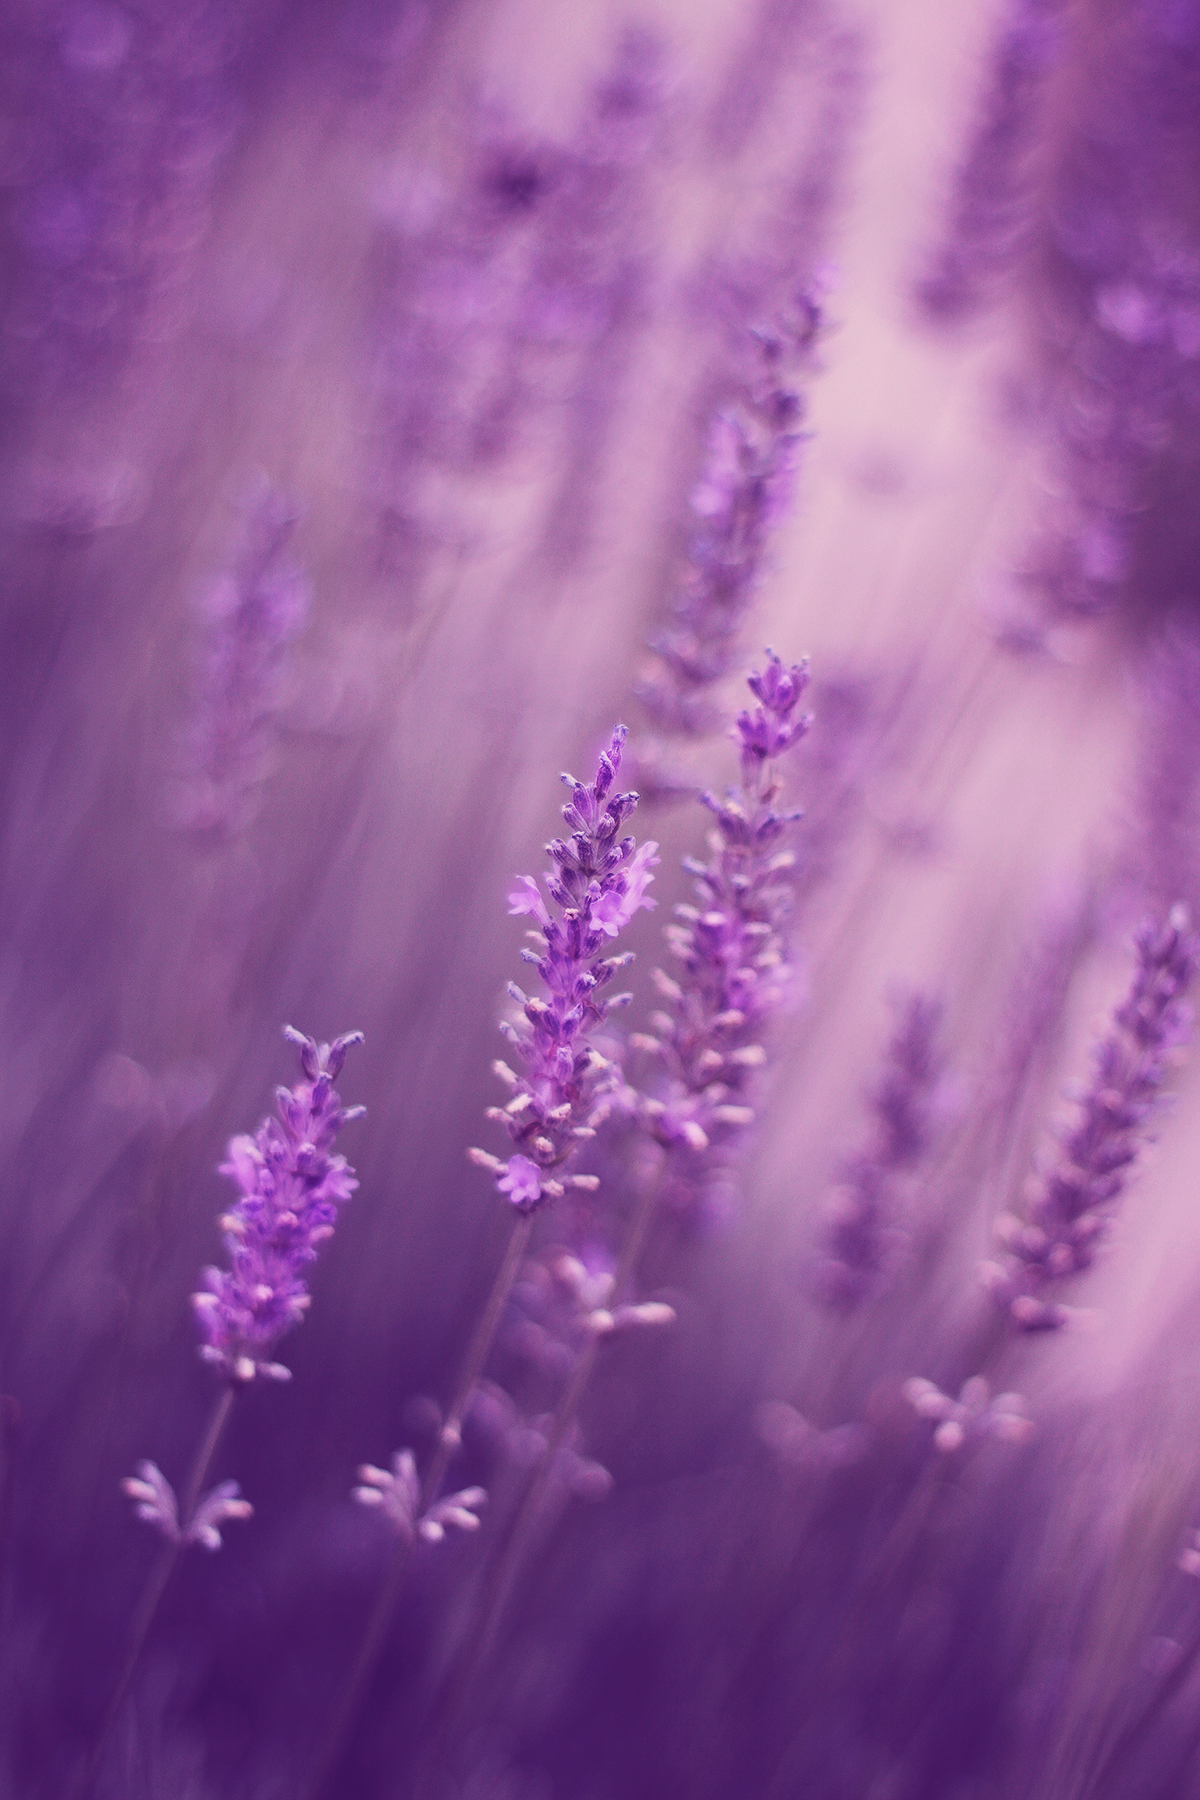 lavender close-up